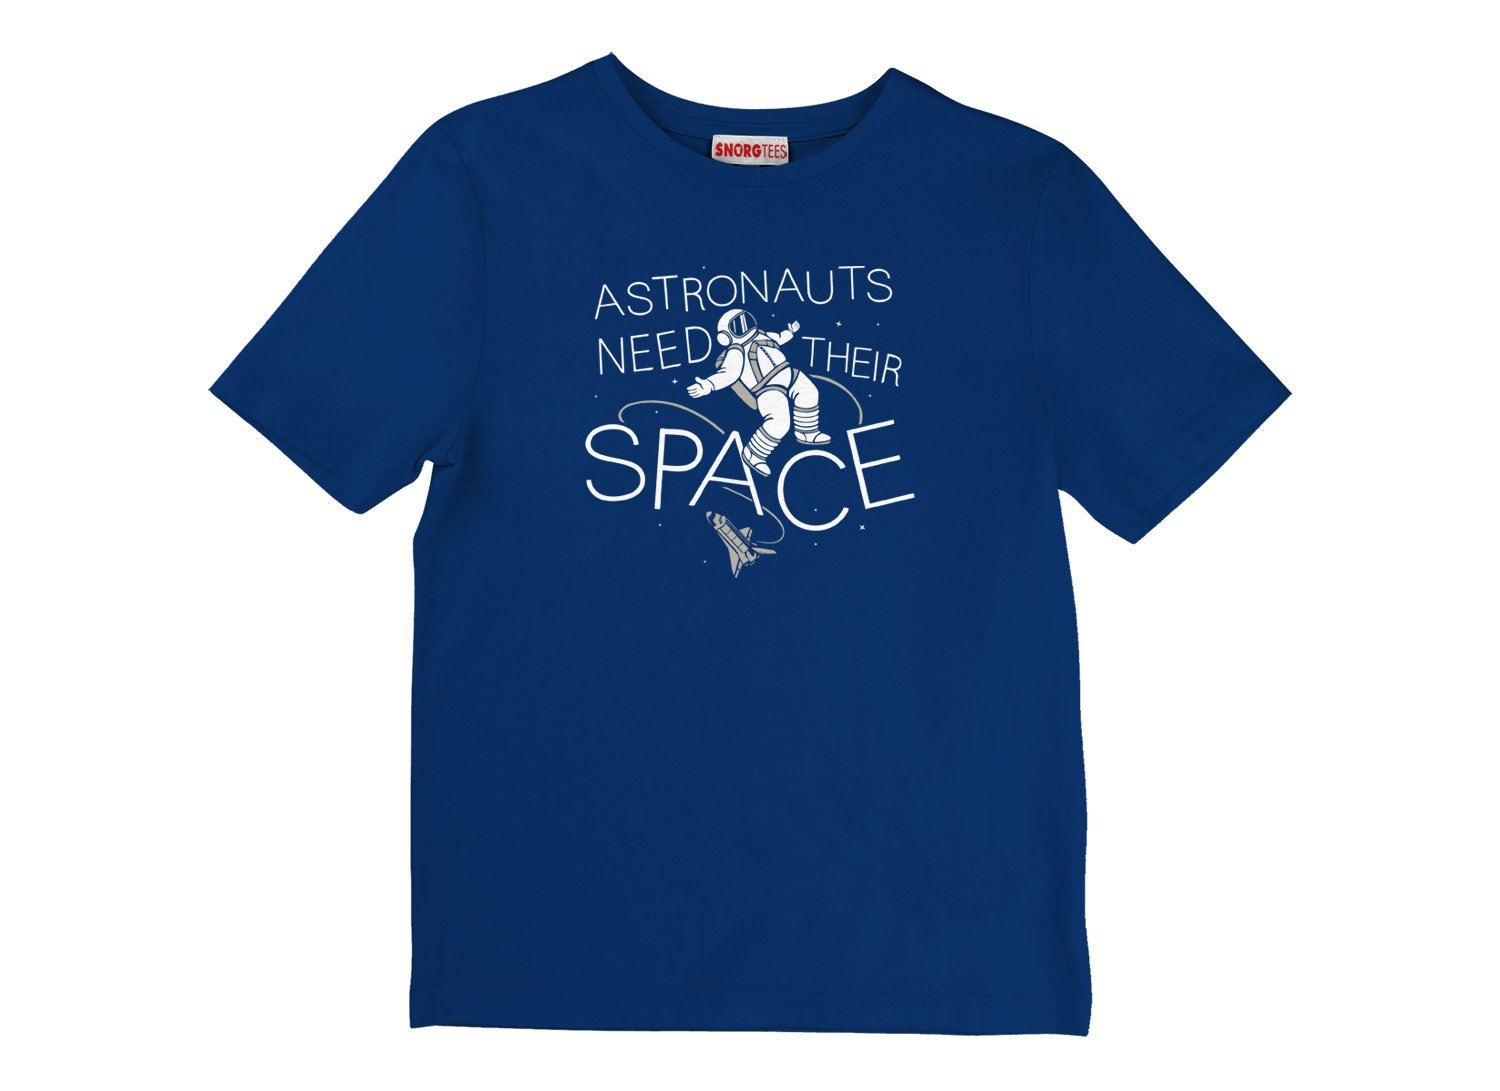 Astronauts Need Their Space on Kids T-Shirt